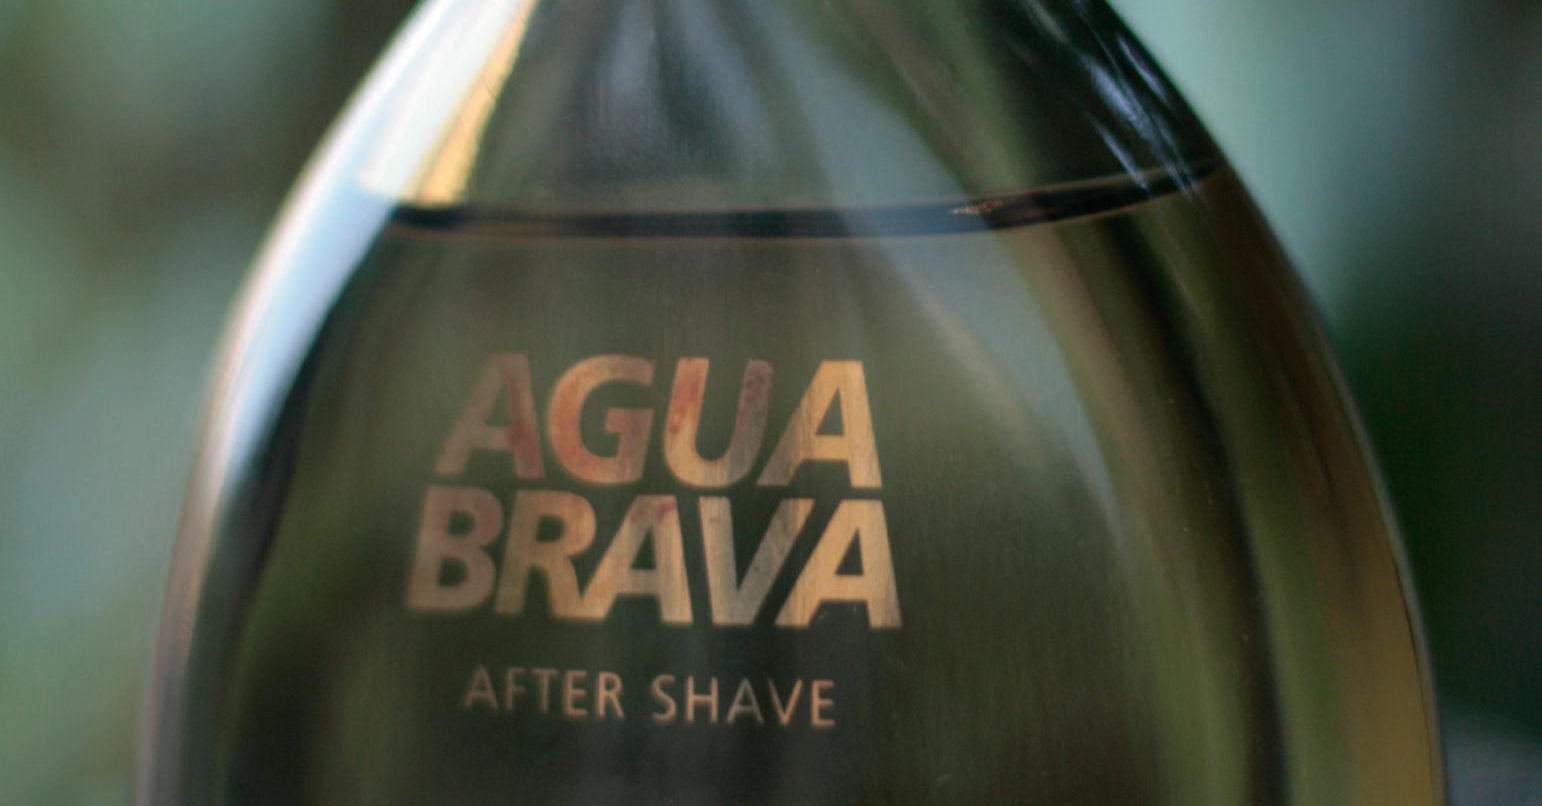 Agua brava bottle